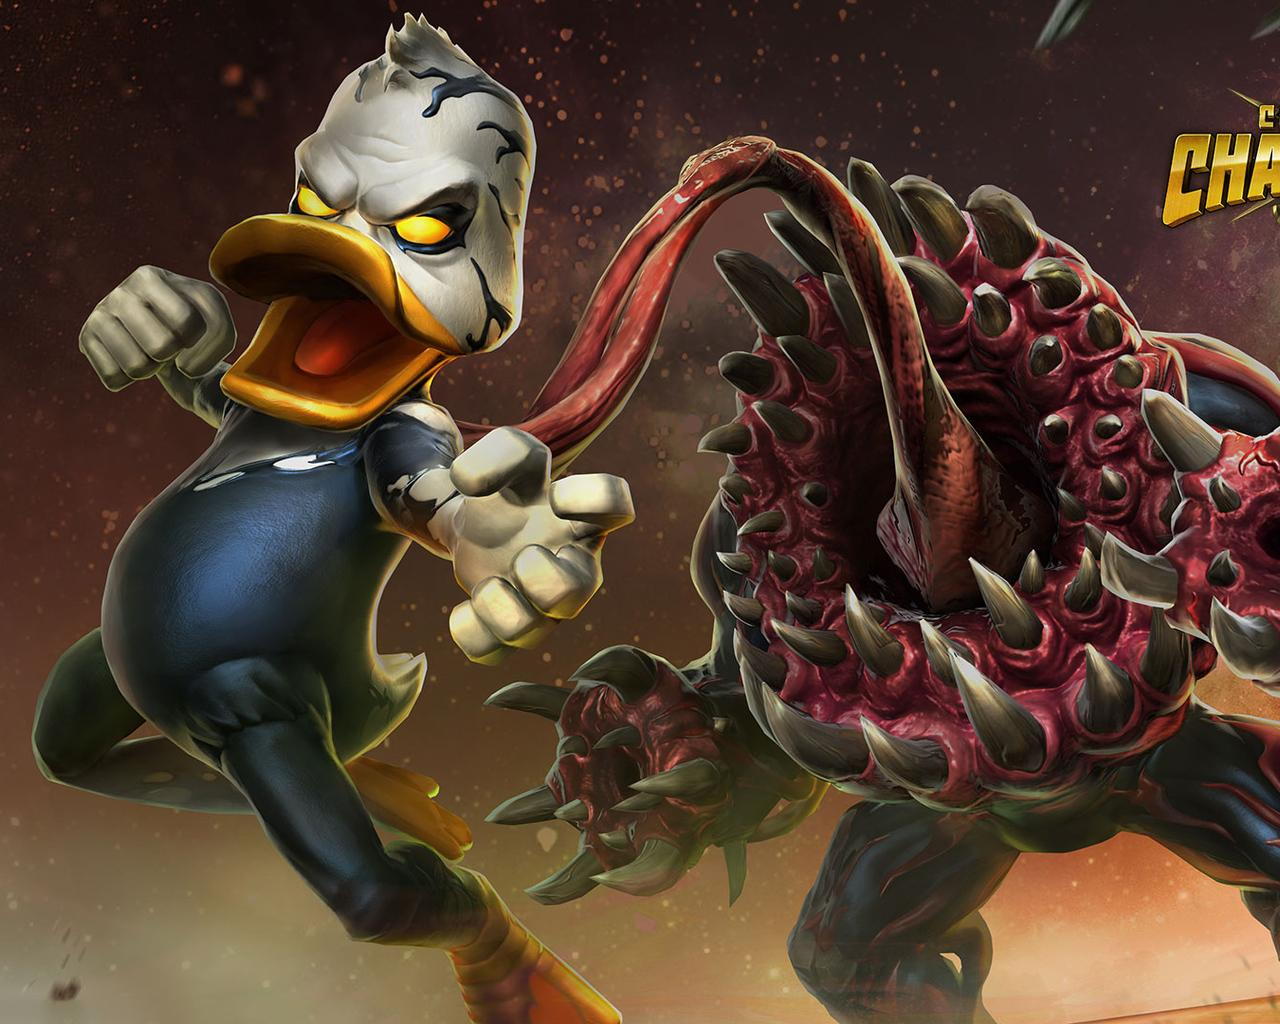 1280x1024 Venom The Duck Contest Of Champions 1280x1024 Resolution